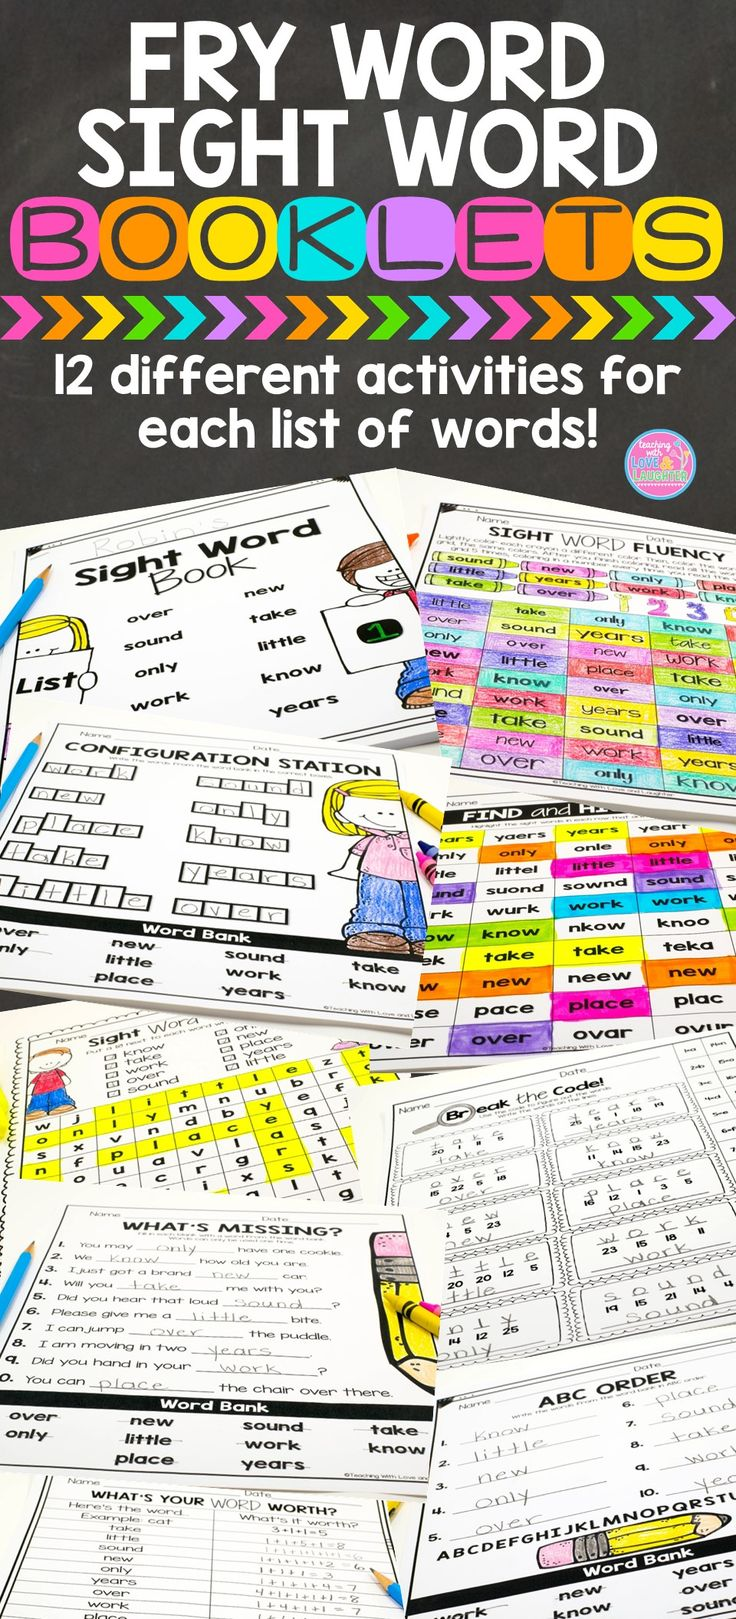 Fry Word Sight Word Packets: Covers the first and second hundred words. Contains…